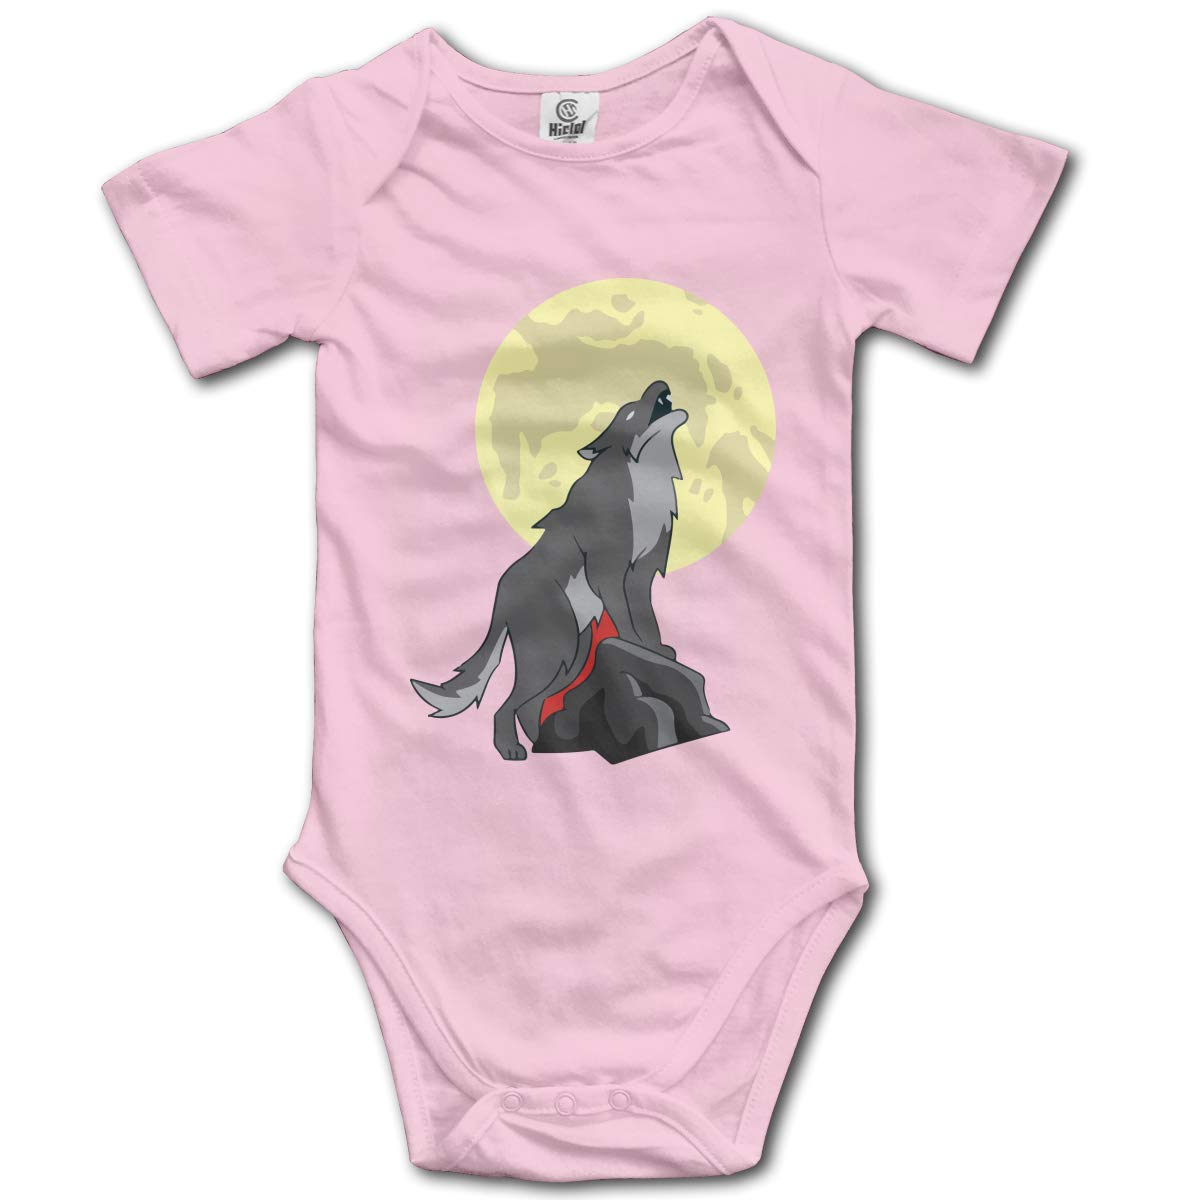 Papa Wolf Newborn Infant Baby 100/% Organic Cotton Jumpsuit Outfit 0-2T